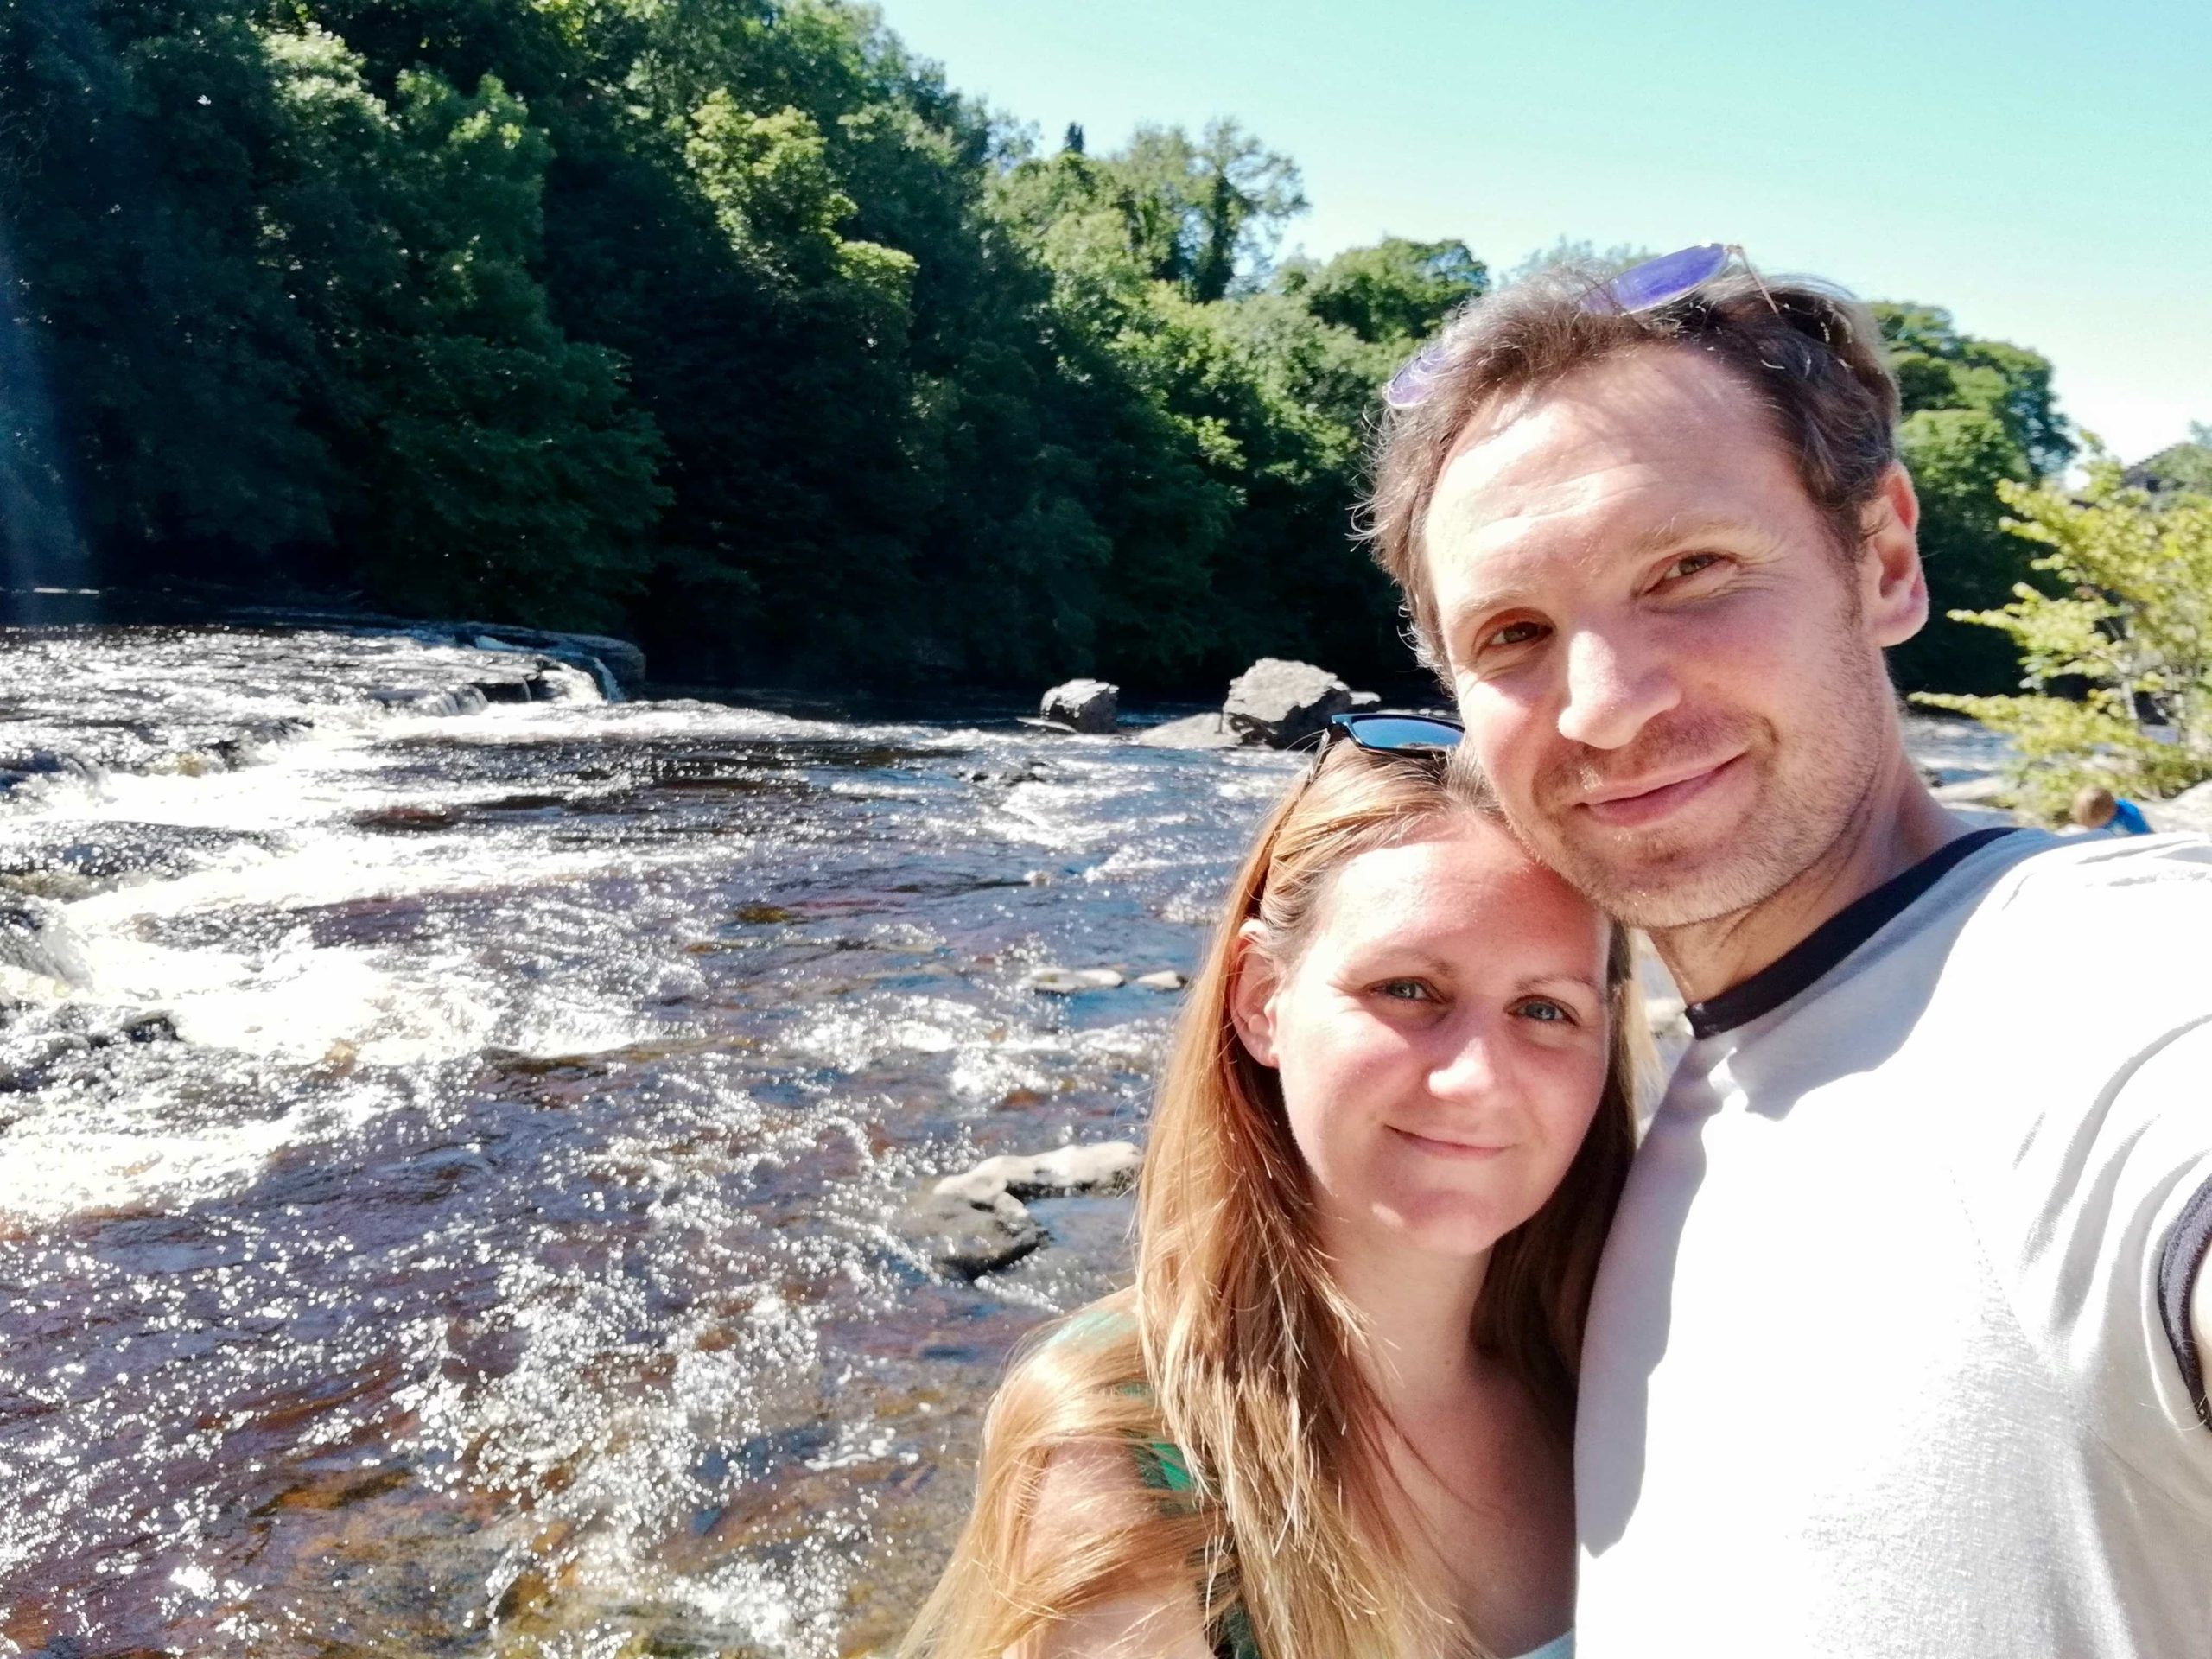 Us at Aysgarth Falls, Yorkshire